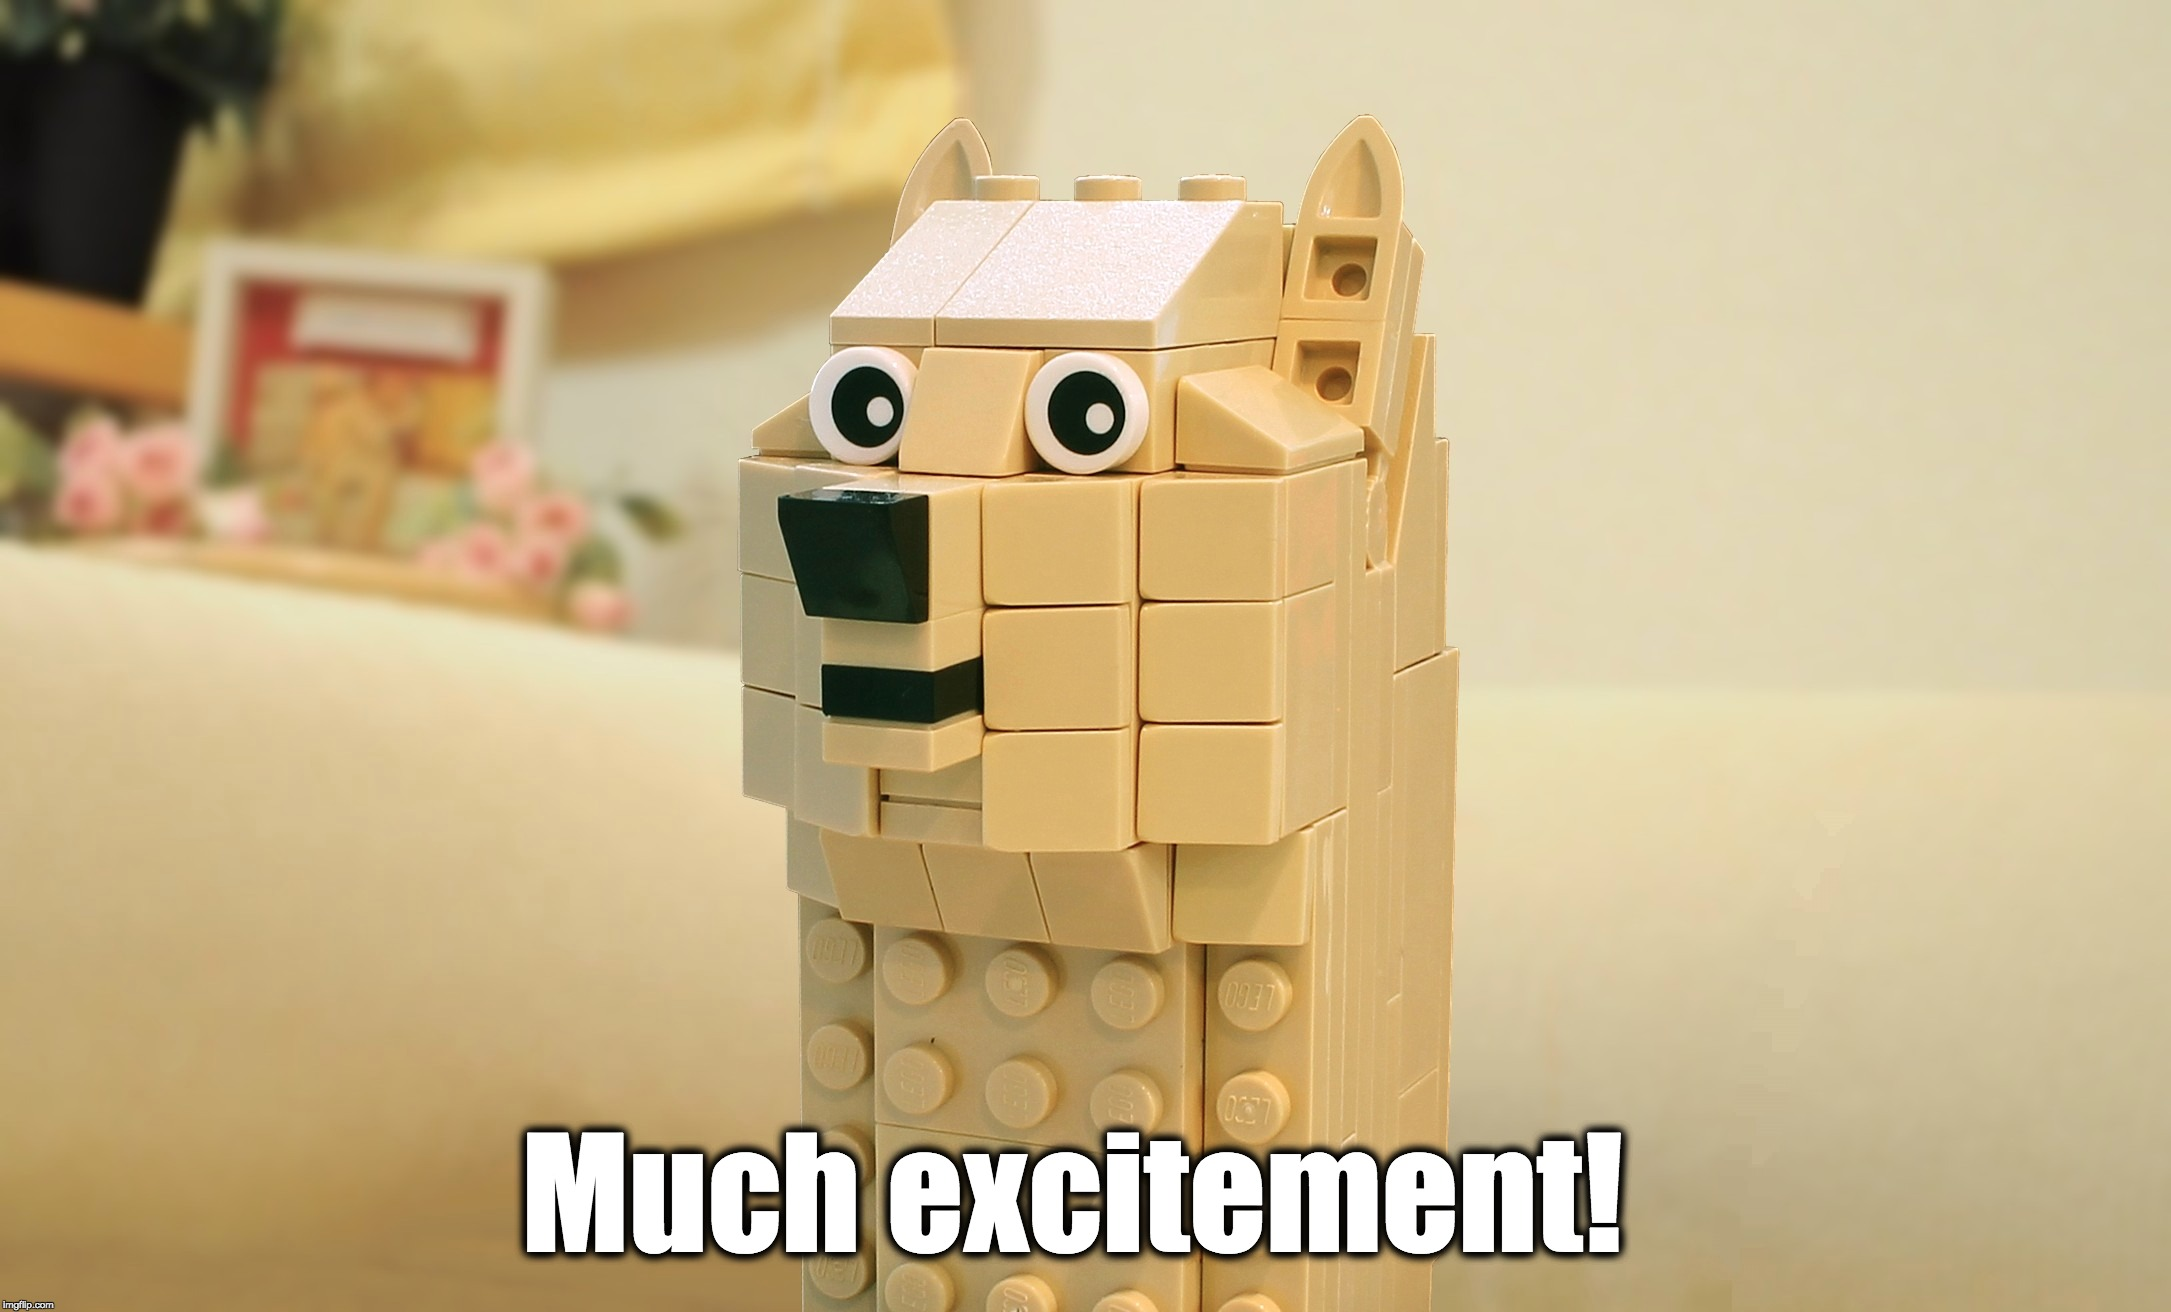 Much excitement! | made w/ Imgflip meme maker